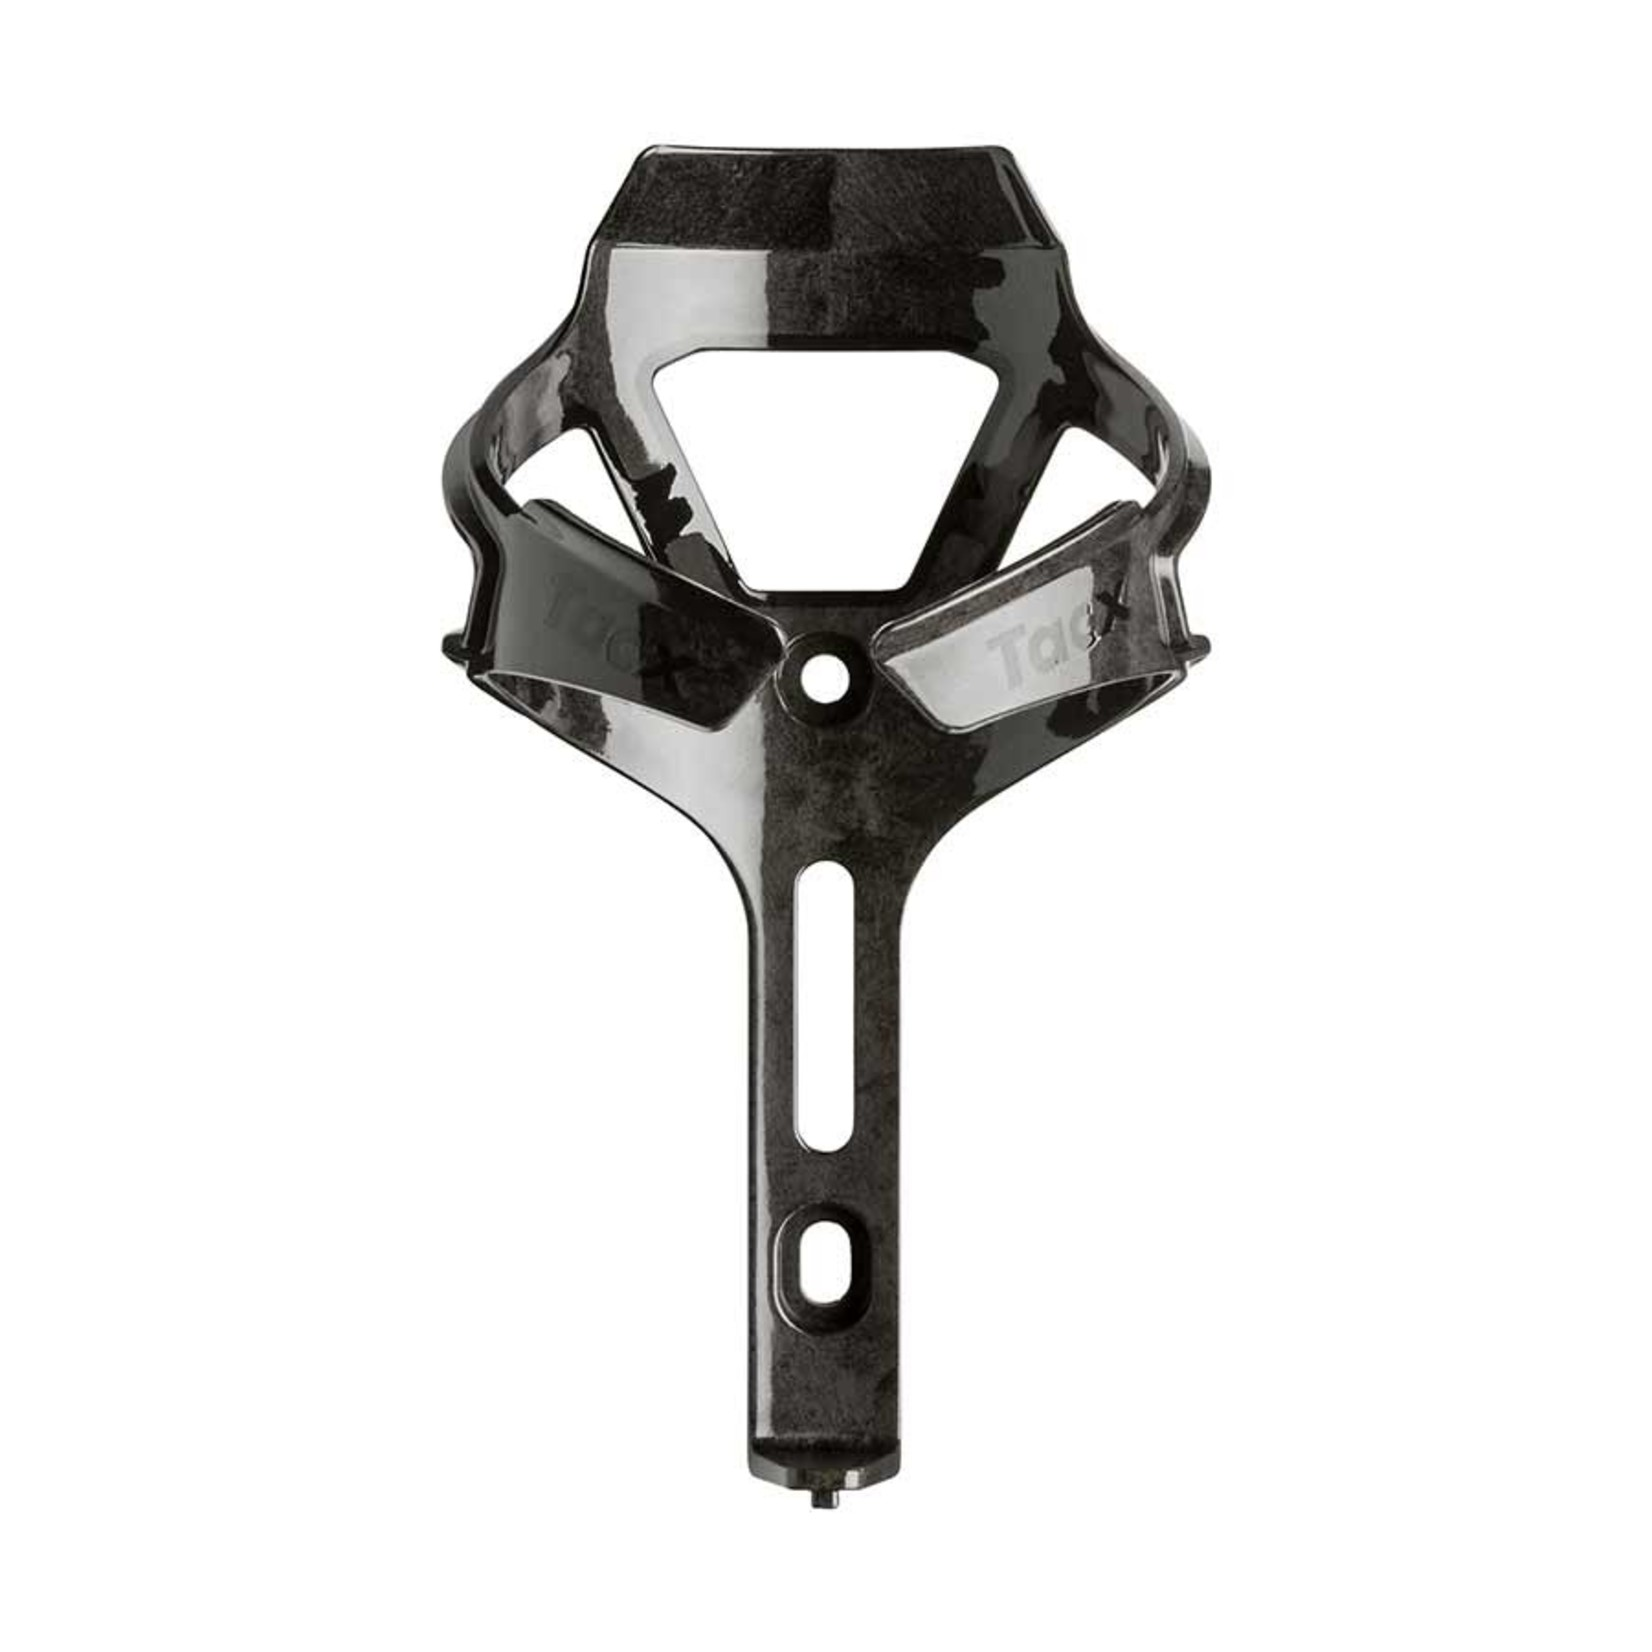 Tacx Tacx Ciro Bottle Cage